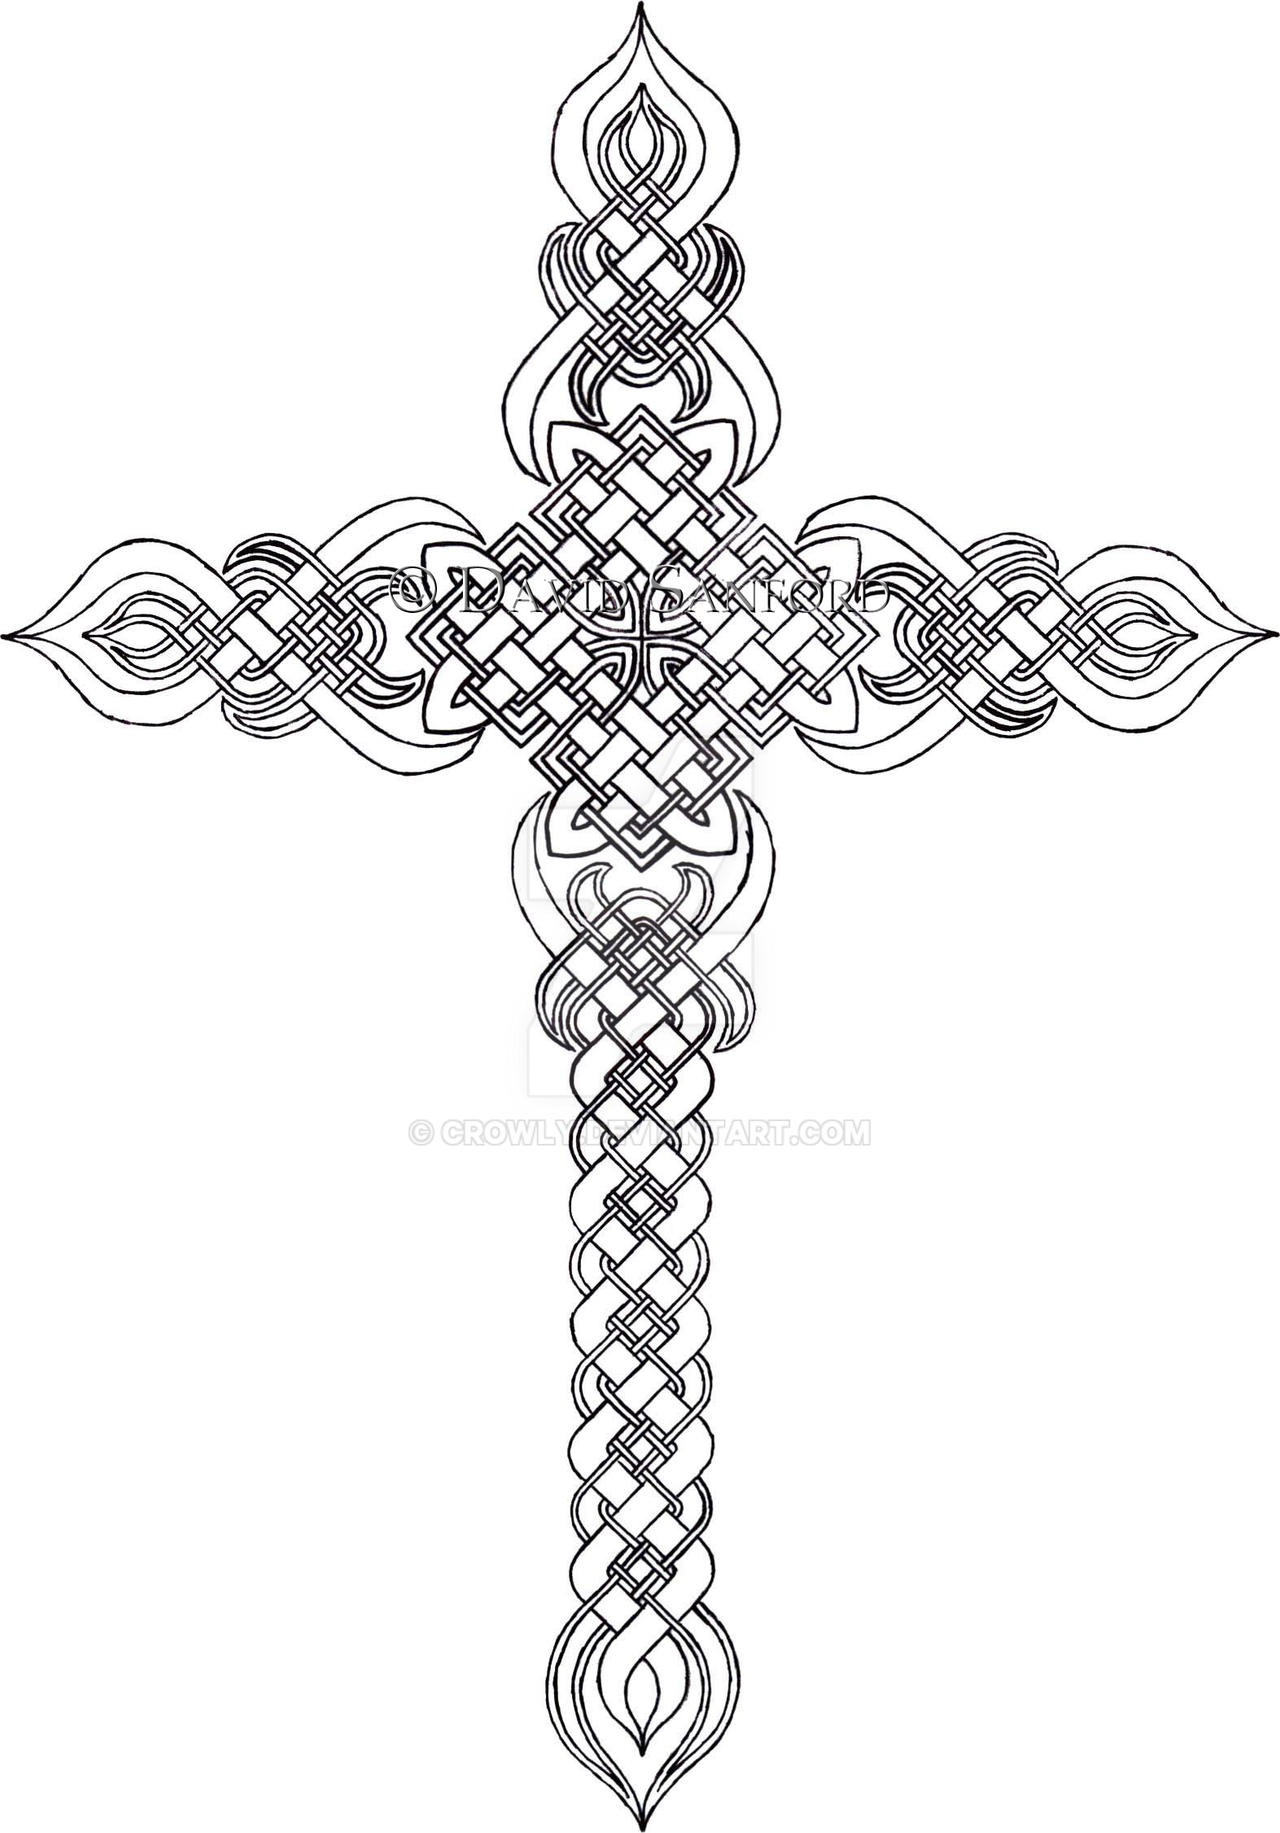 crucifix coloring pages - photo#42